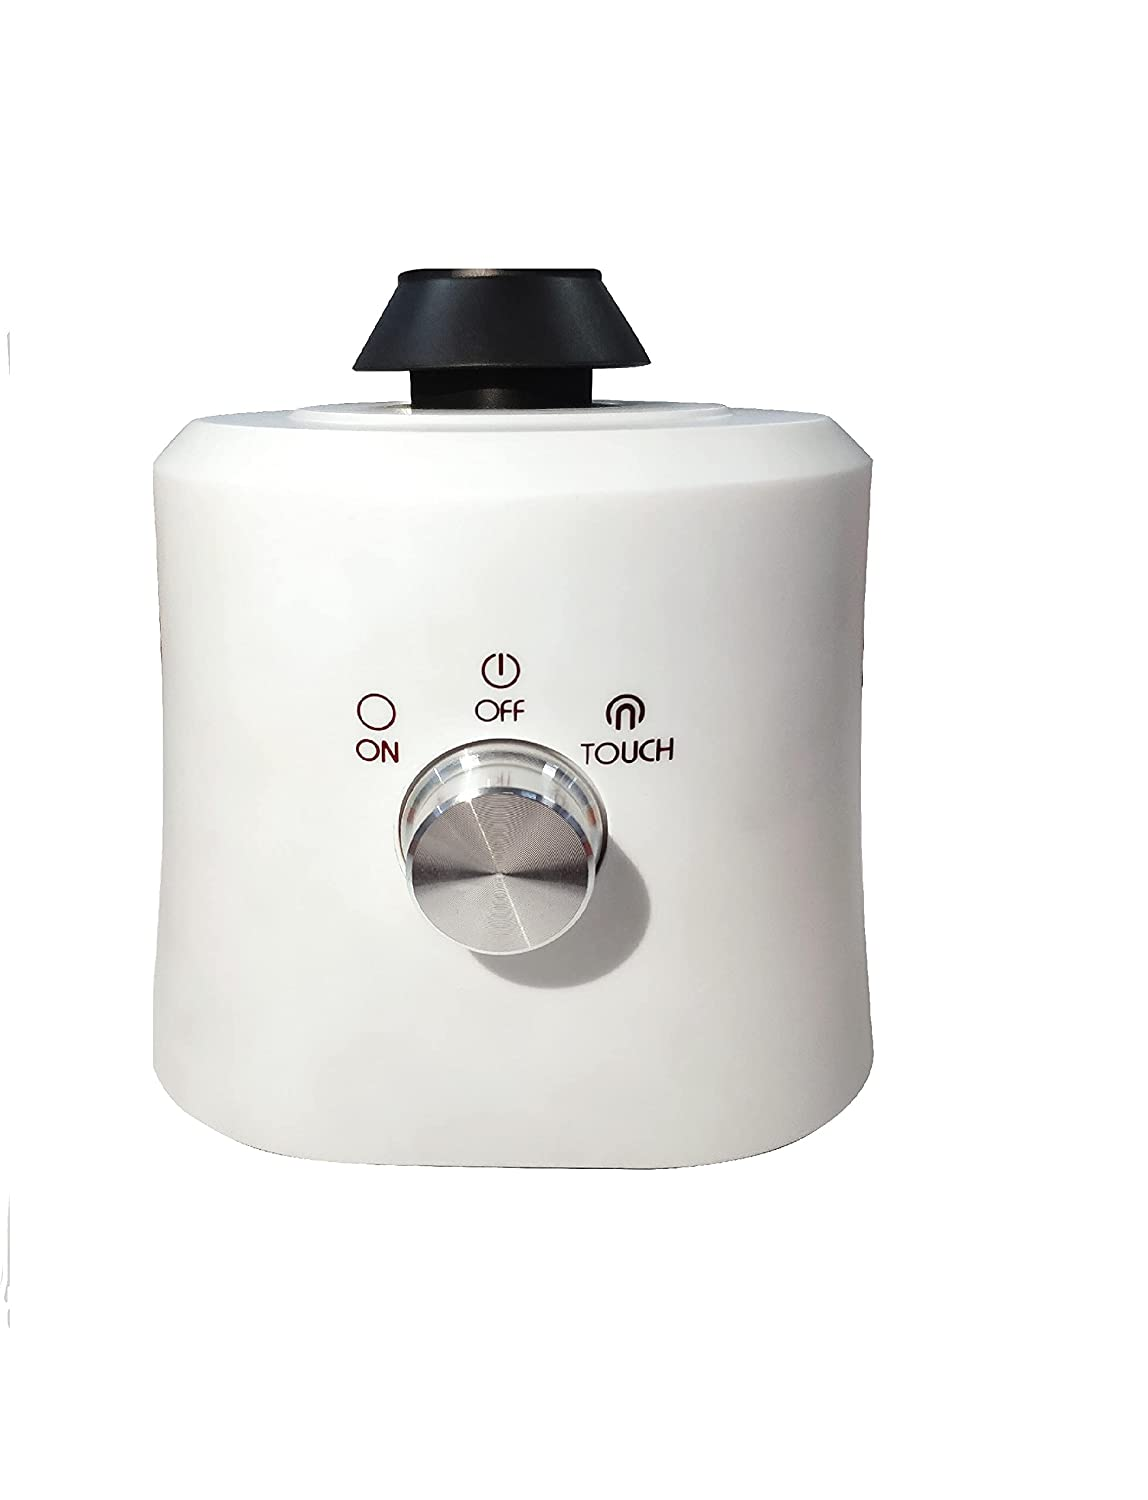 Lab Vortex Over item handling Mixer for Challenge the lowest price Test Centrifuge and Mixing Tubes